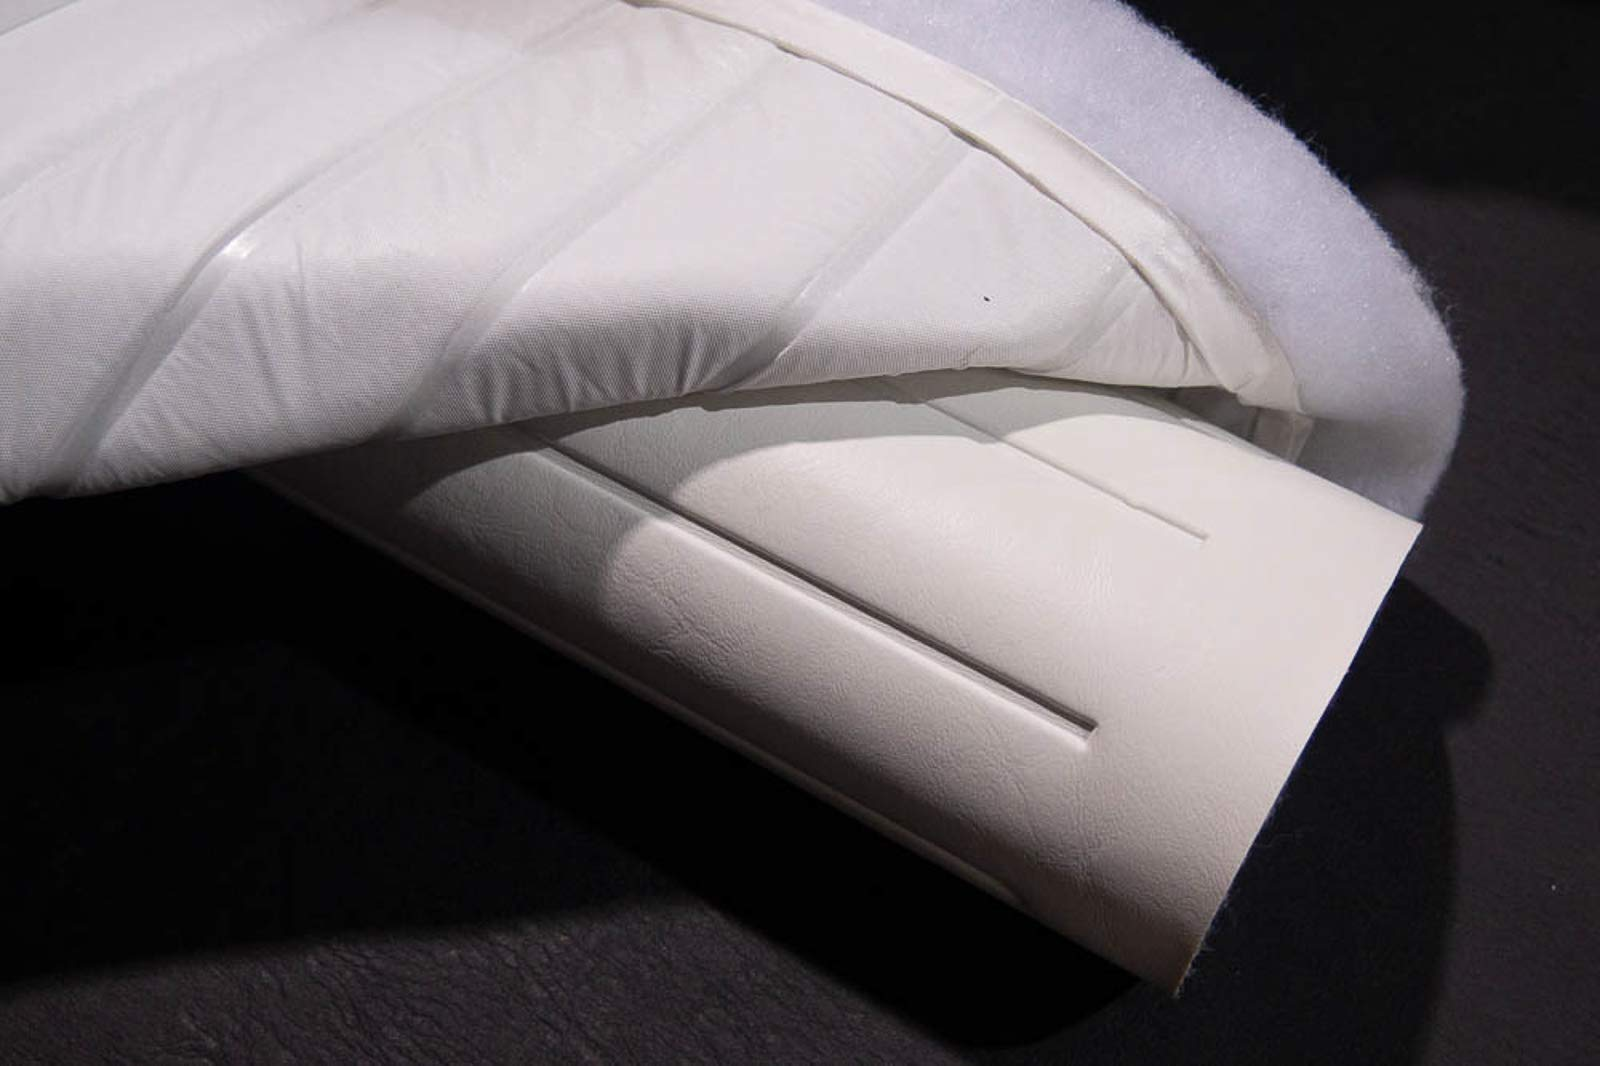 Pleated Marine Vinyl Upholstery Fabric Bright White 54'' Wide by 5 Yards Boat Auto by Bry-Tech Marine1 (Image #5)